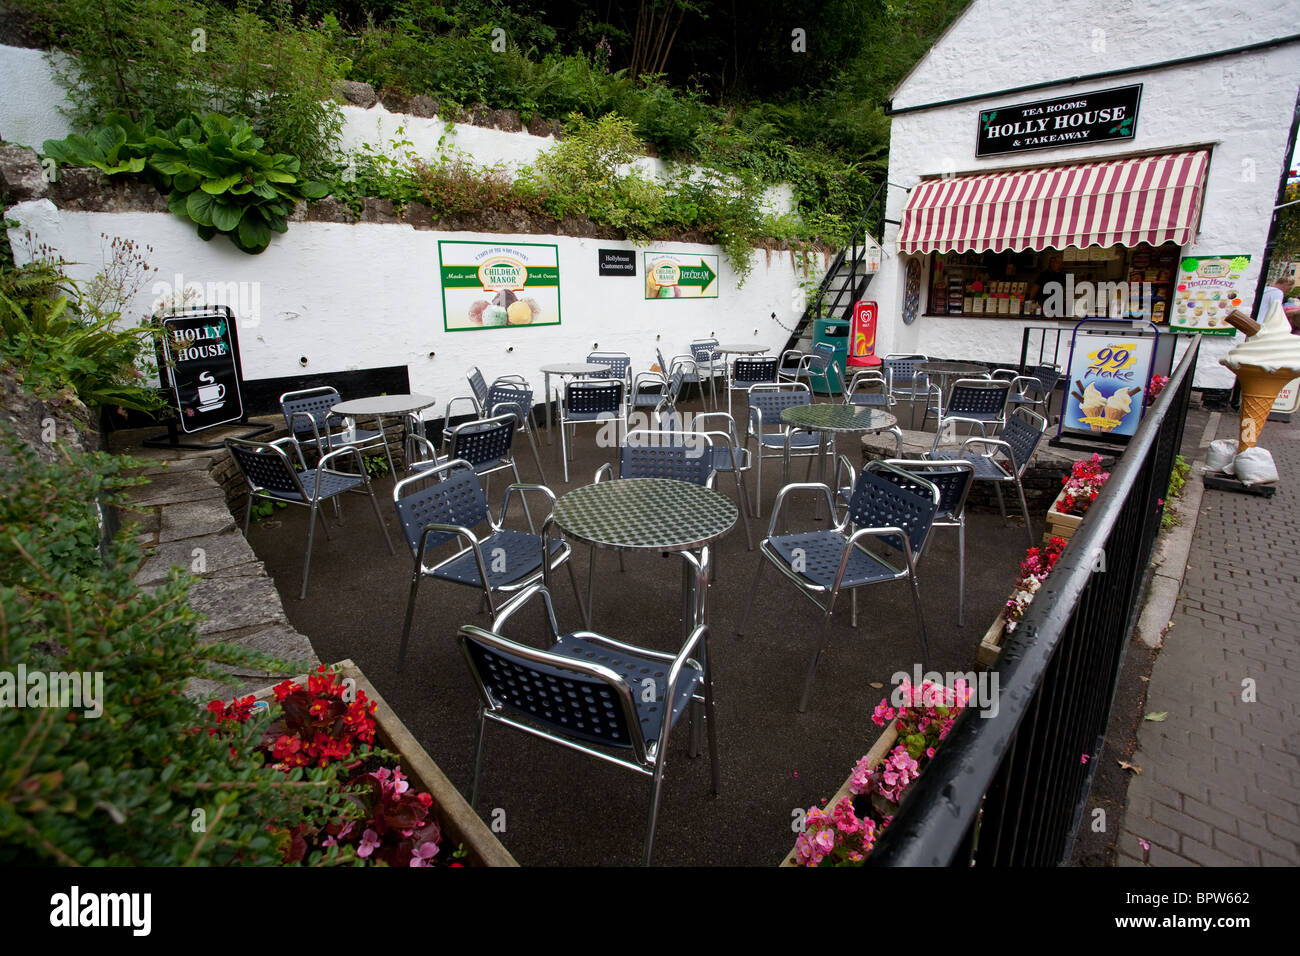 Outdoor rooms stock photos outdoor rooms stock images - Cheddar gorge hotels with swimming pools ...